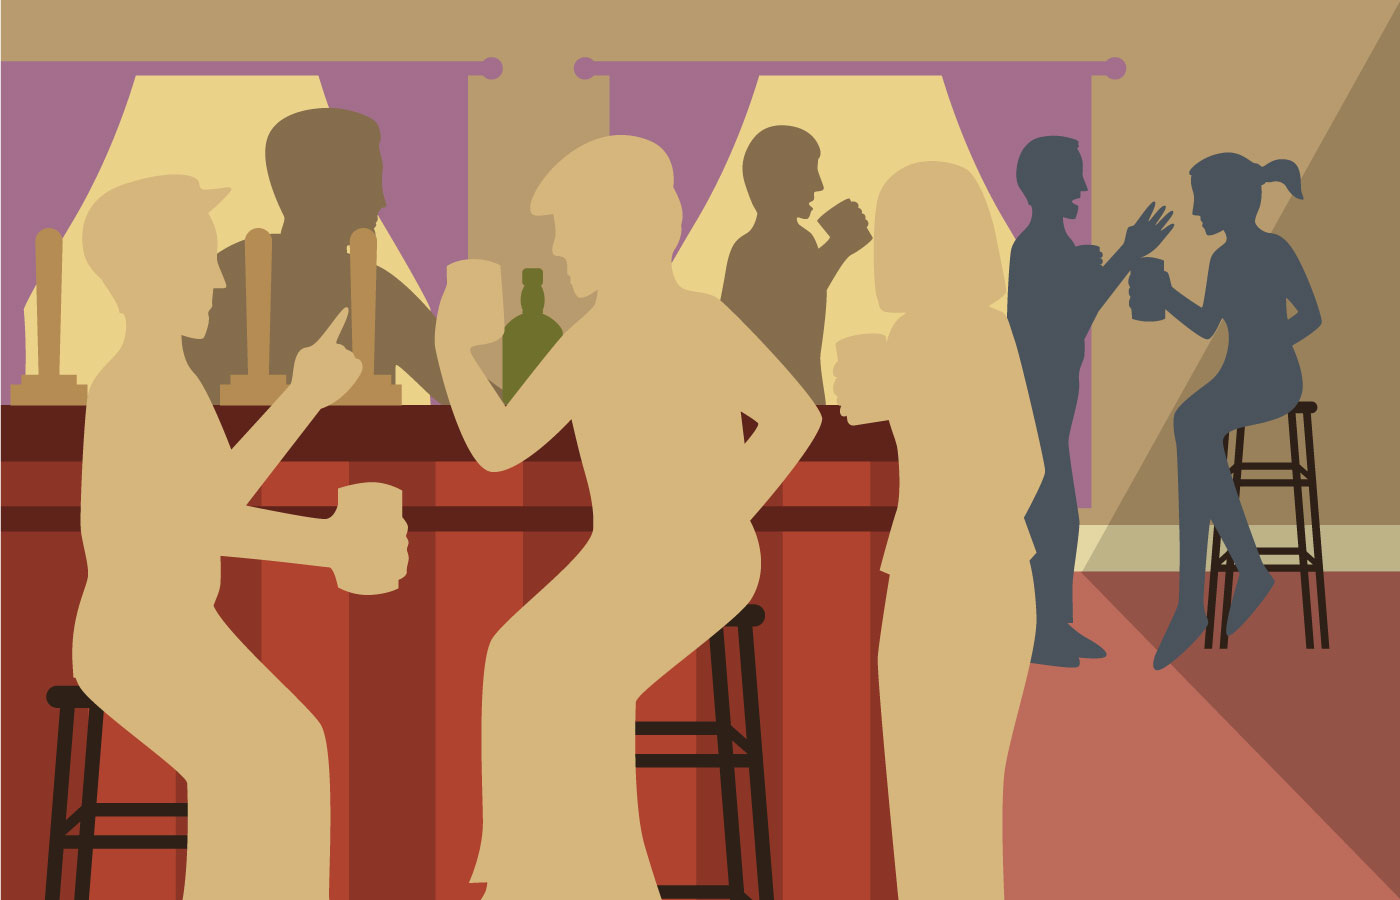 Crowded Bar Silhouette Clip Art  Download Free Vector Art